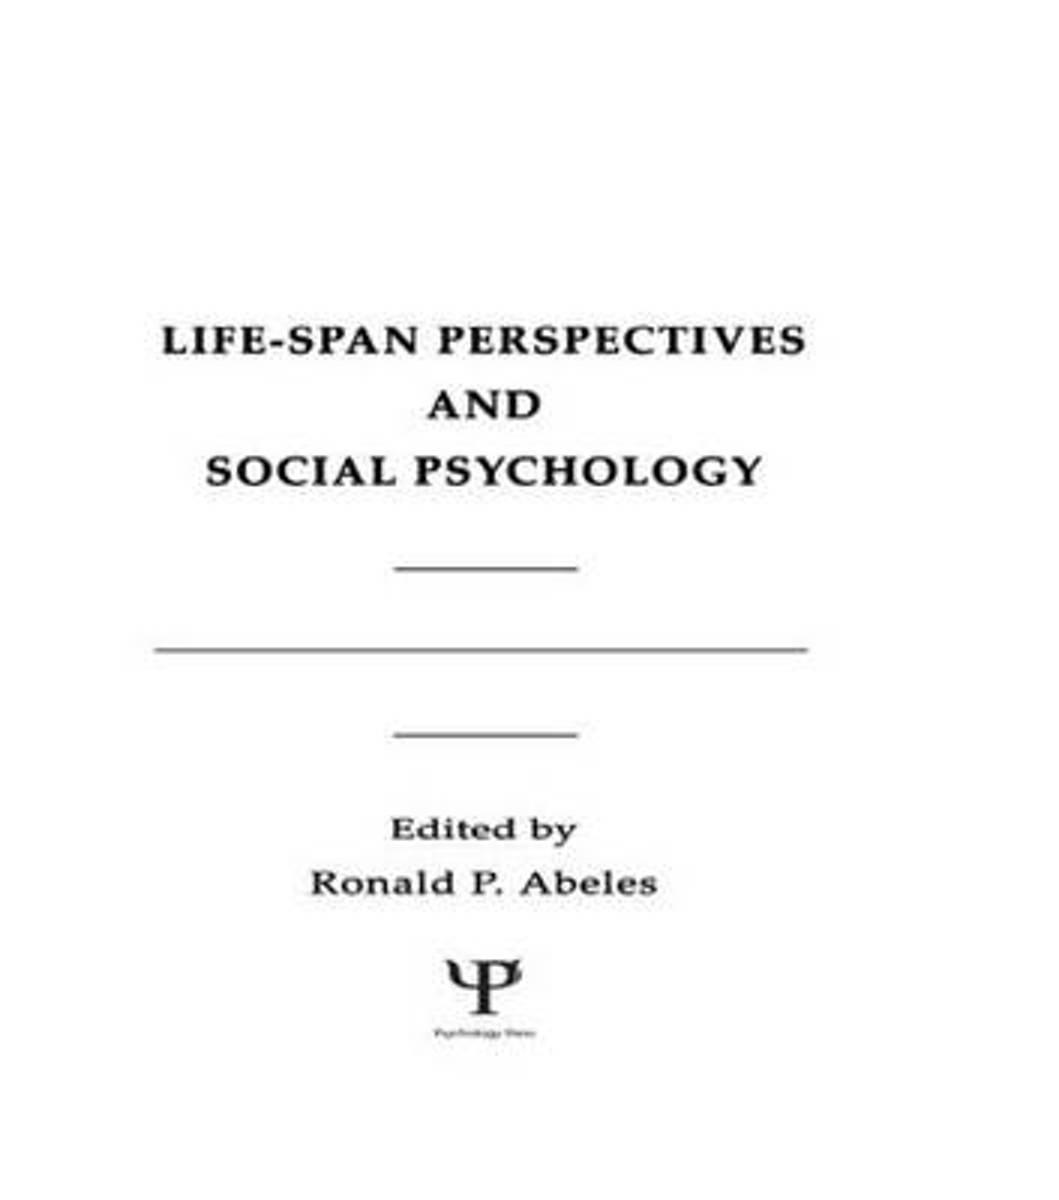 Life-Span Perspectives and Social Psychology